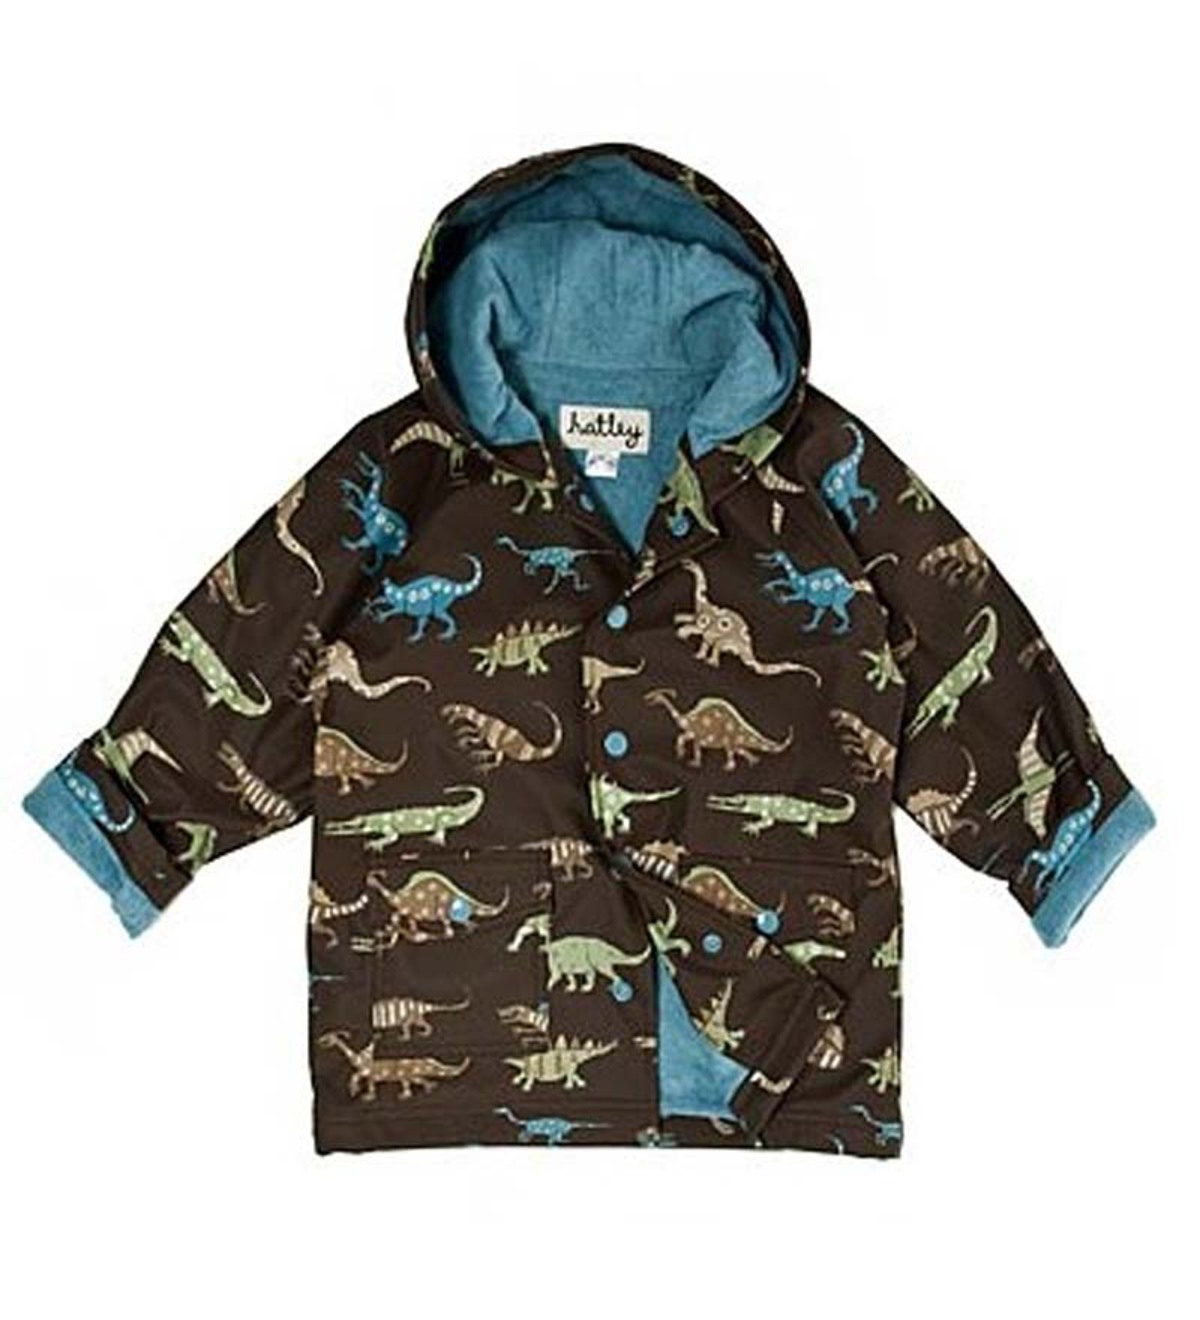 Hatley Boy's Raincoat